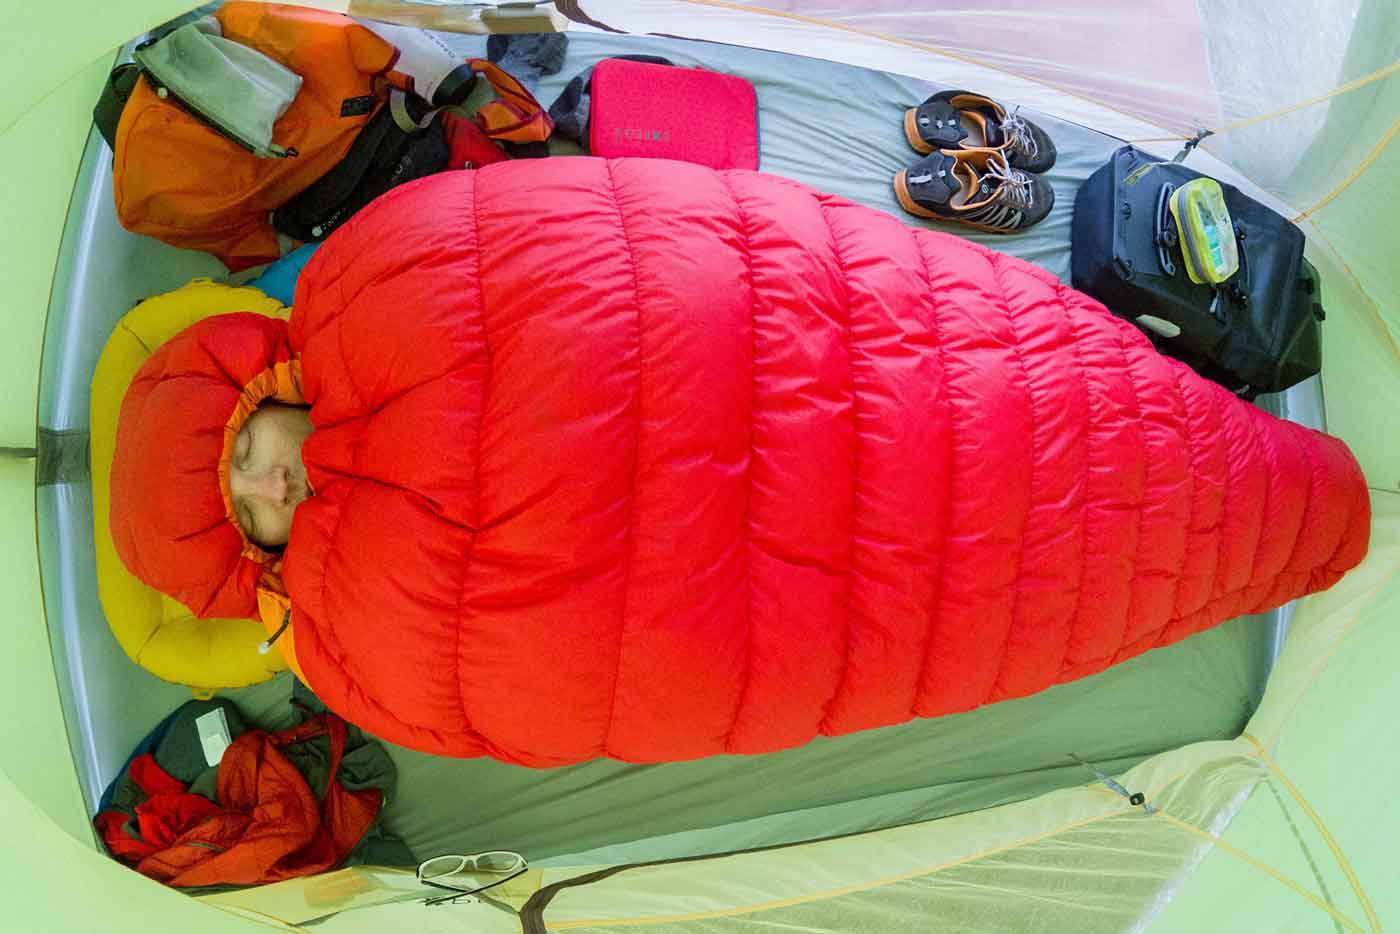 Sleeping comfortably in the outdoors - camp sleep systems